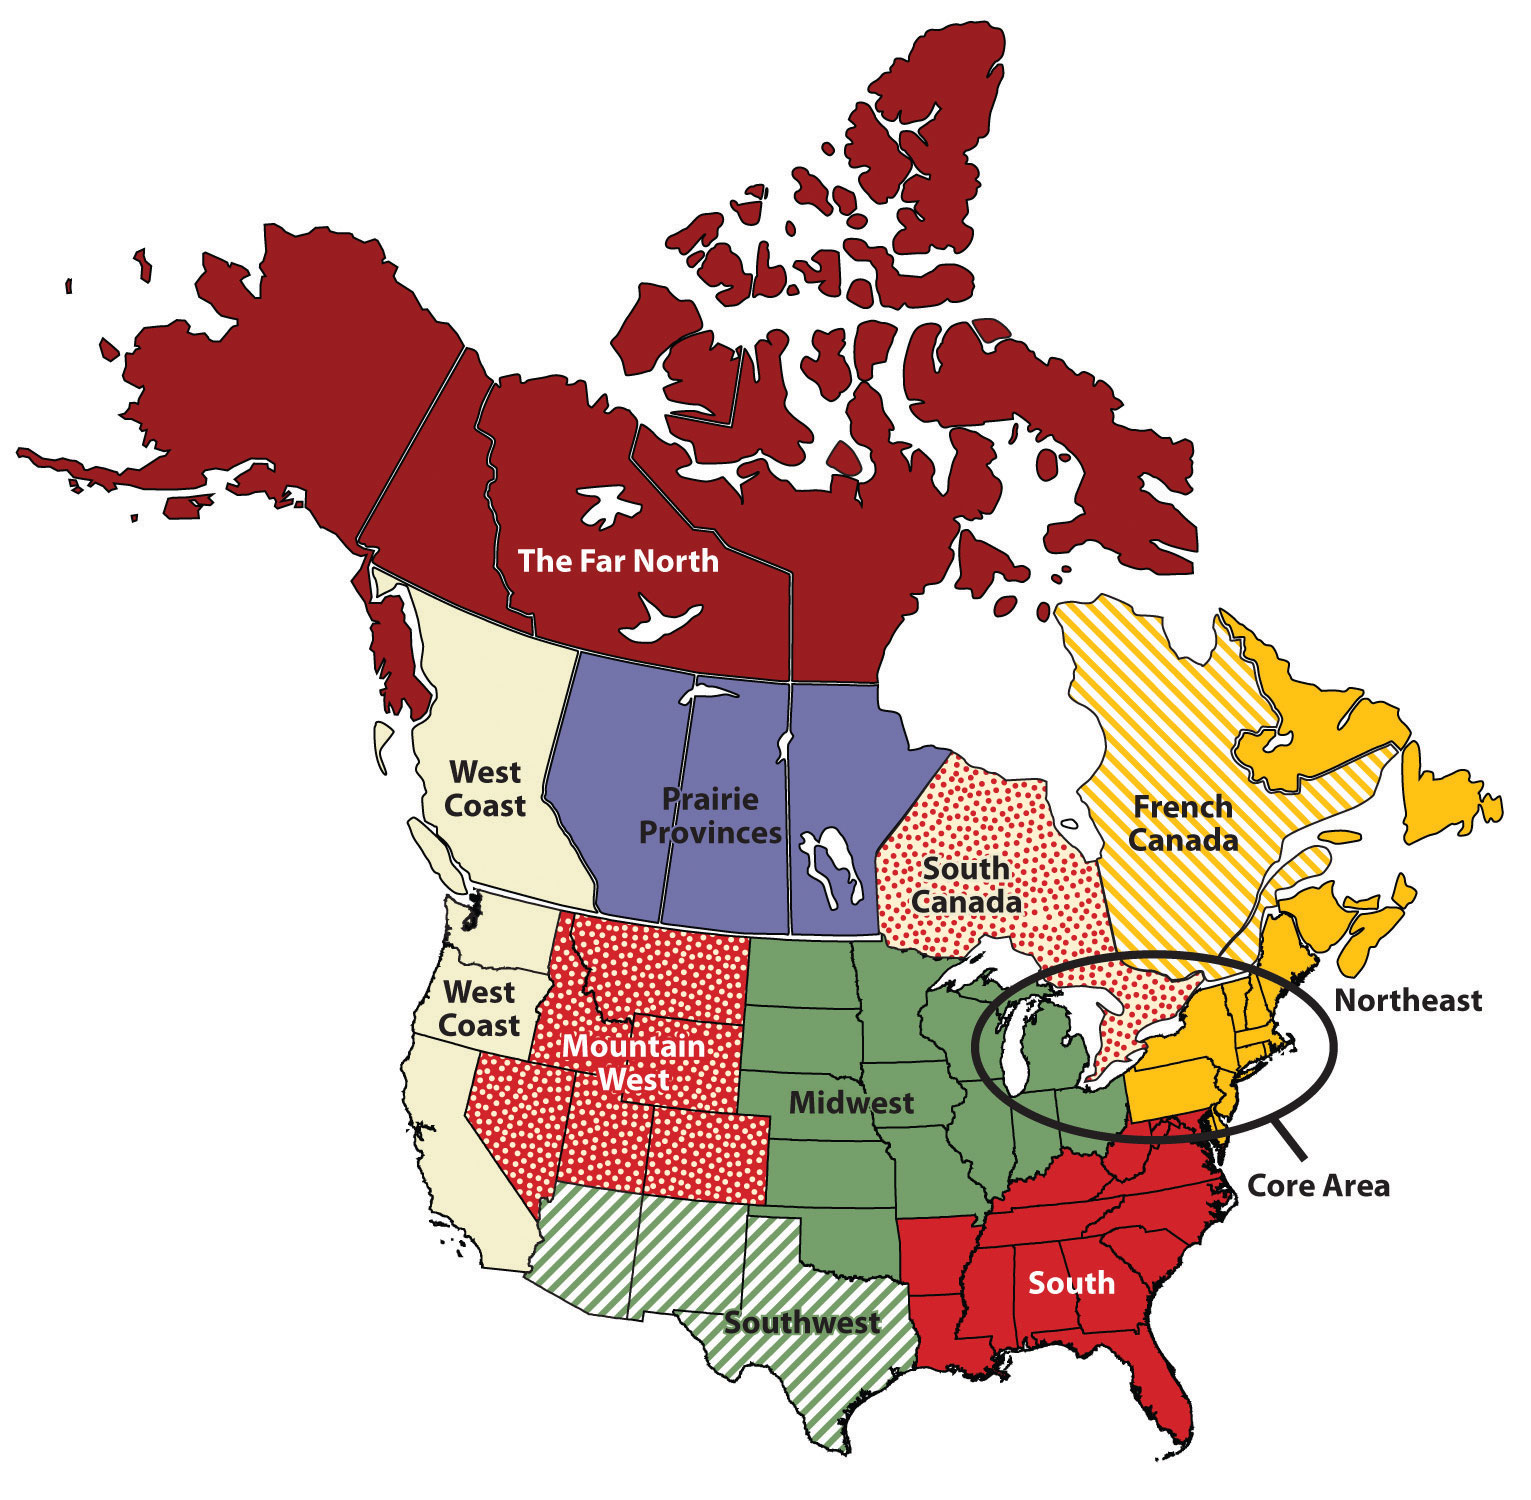 Map Of The United States By Regions.Regions Of The United States And Canada